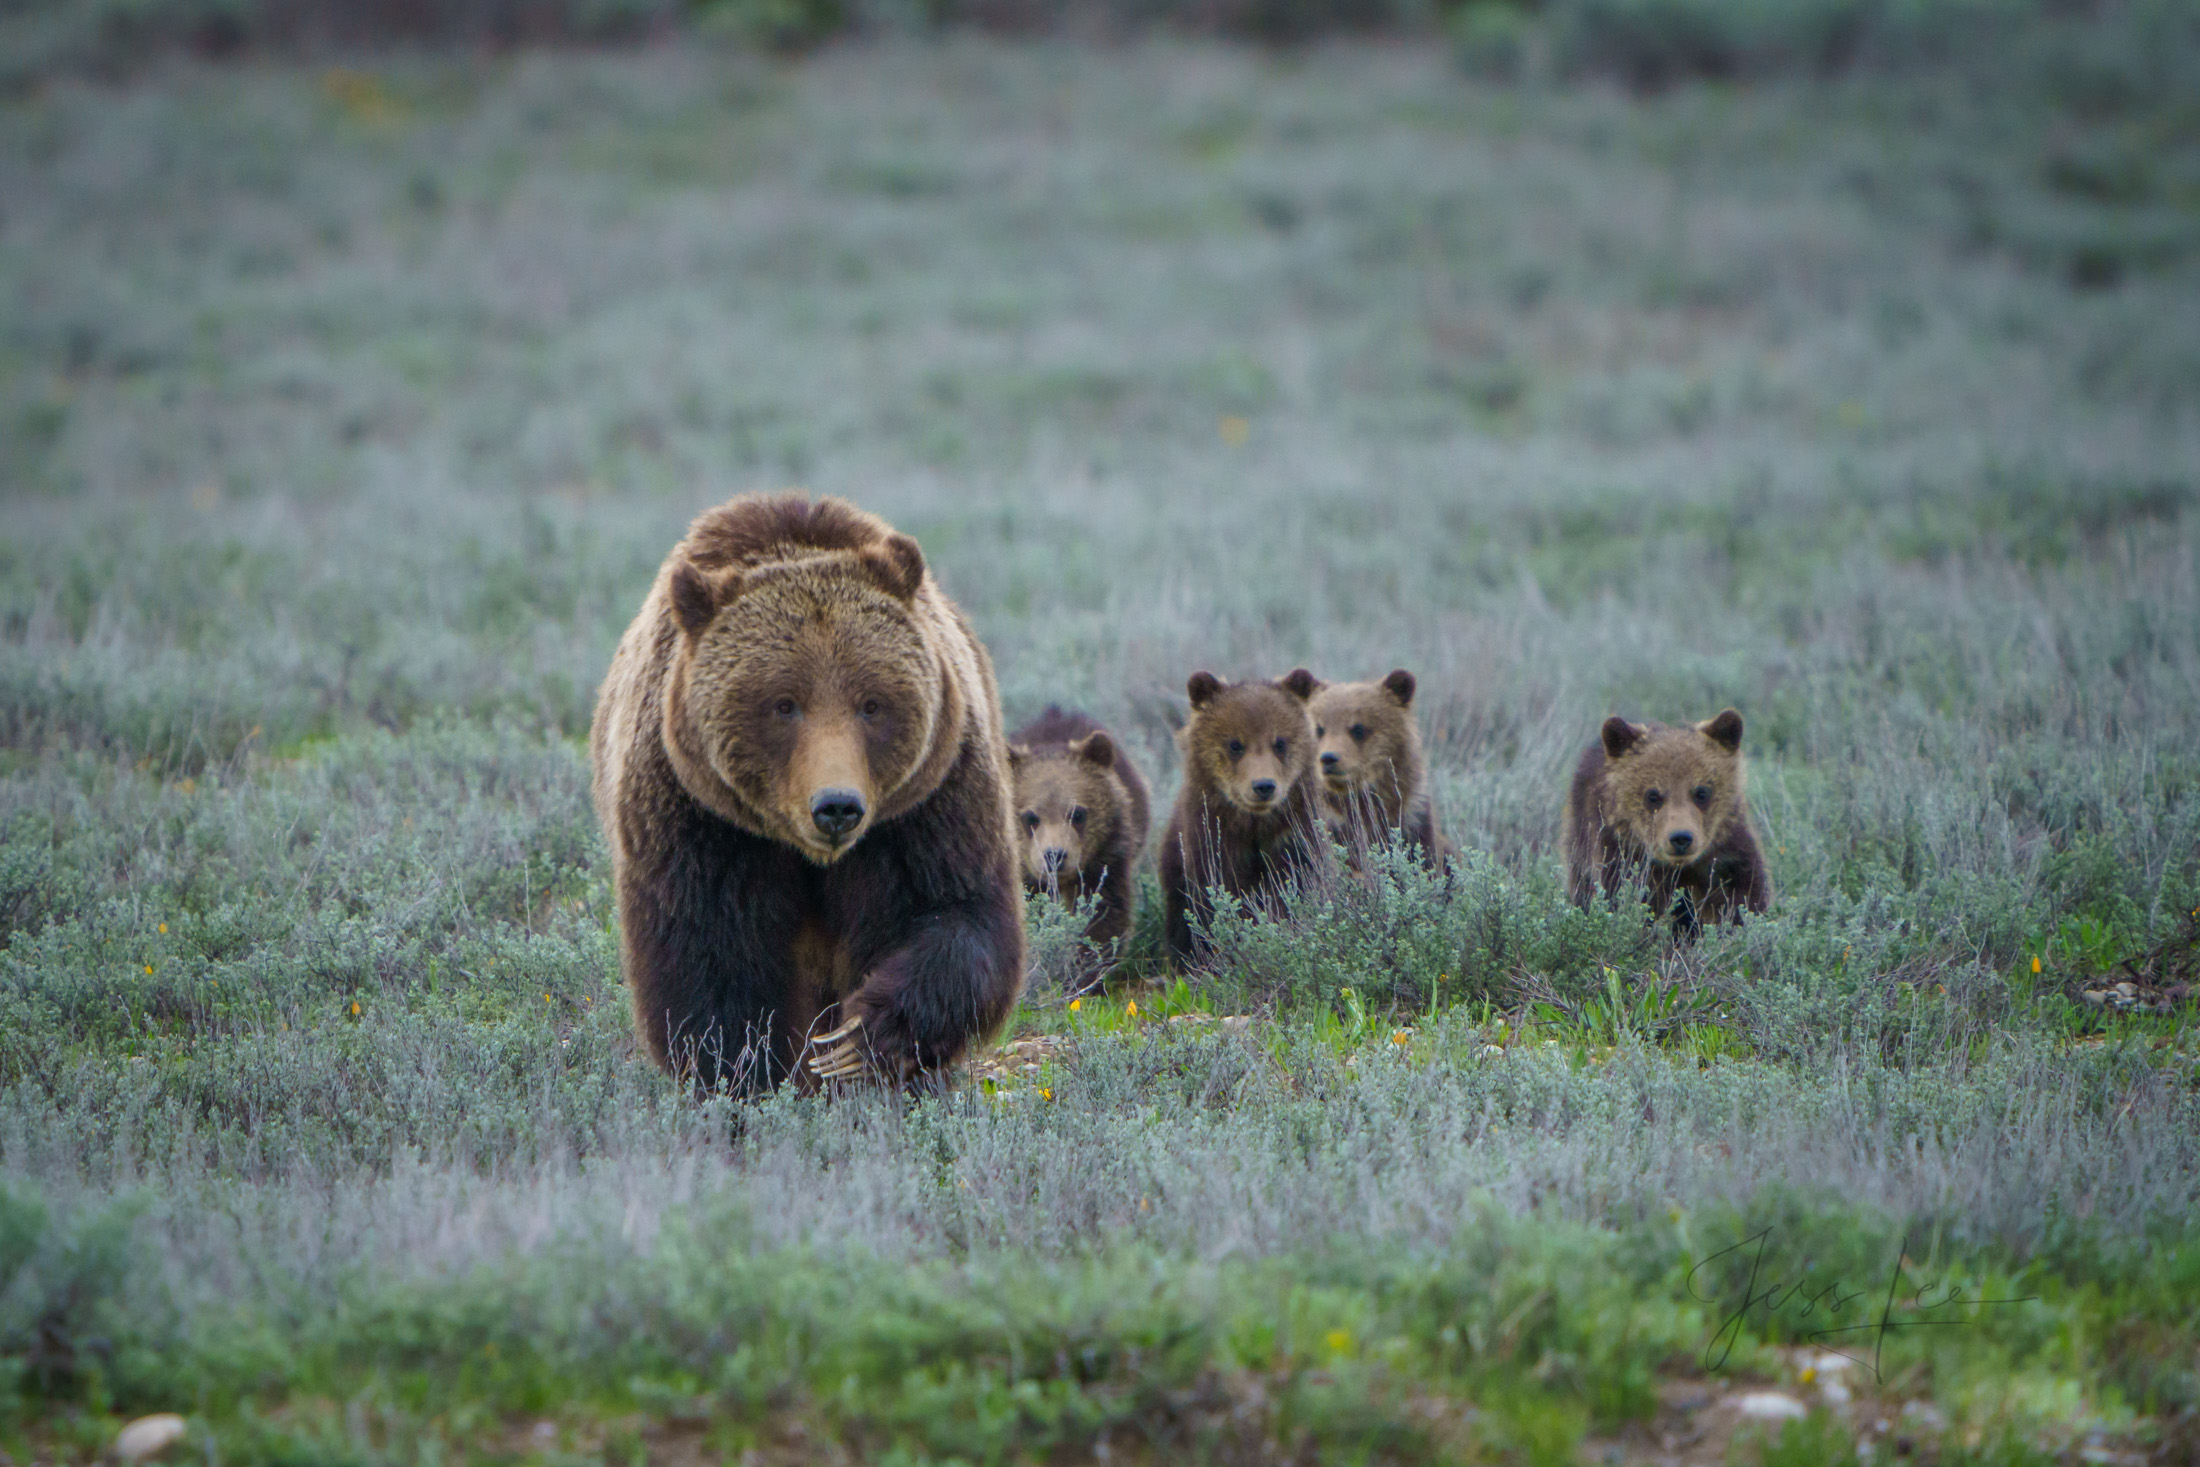 399, grizzly, Grand Teton, bear, cubs, , Grizzly Bear Photograph, Grizzly bear picture, Grizzly bear print, photo